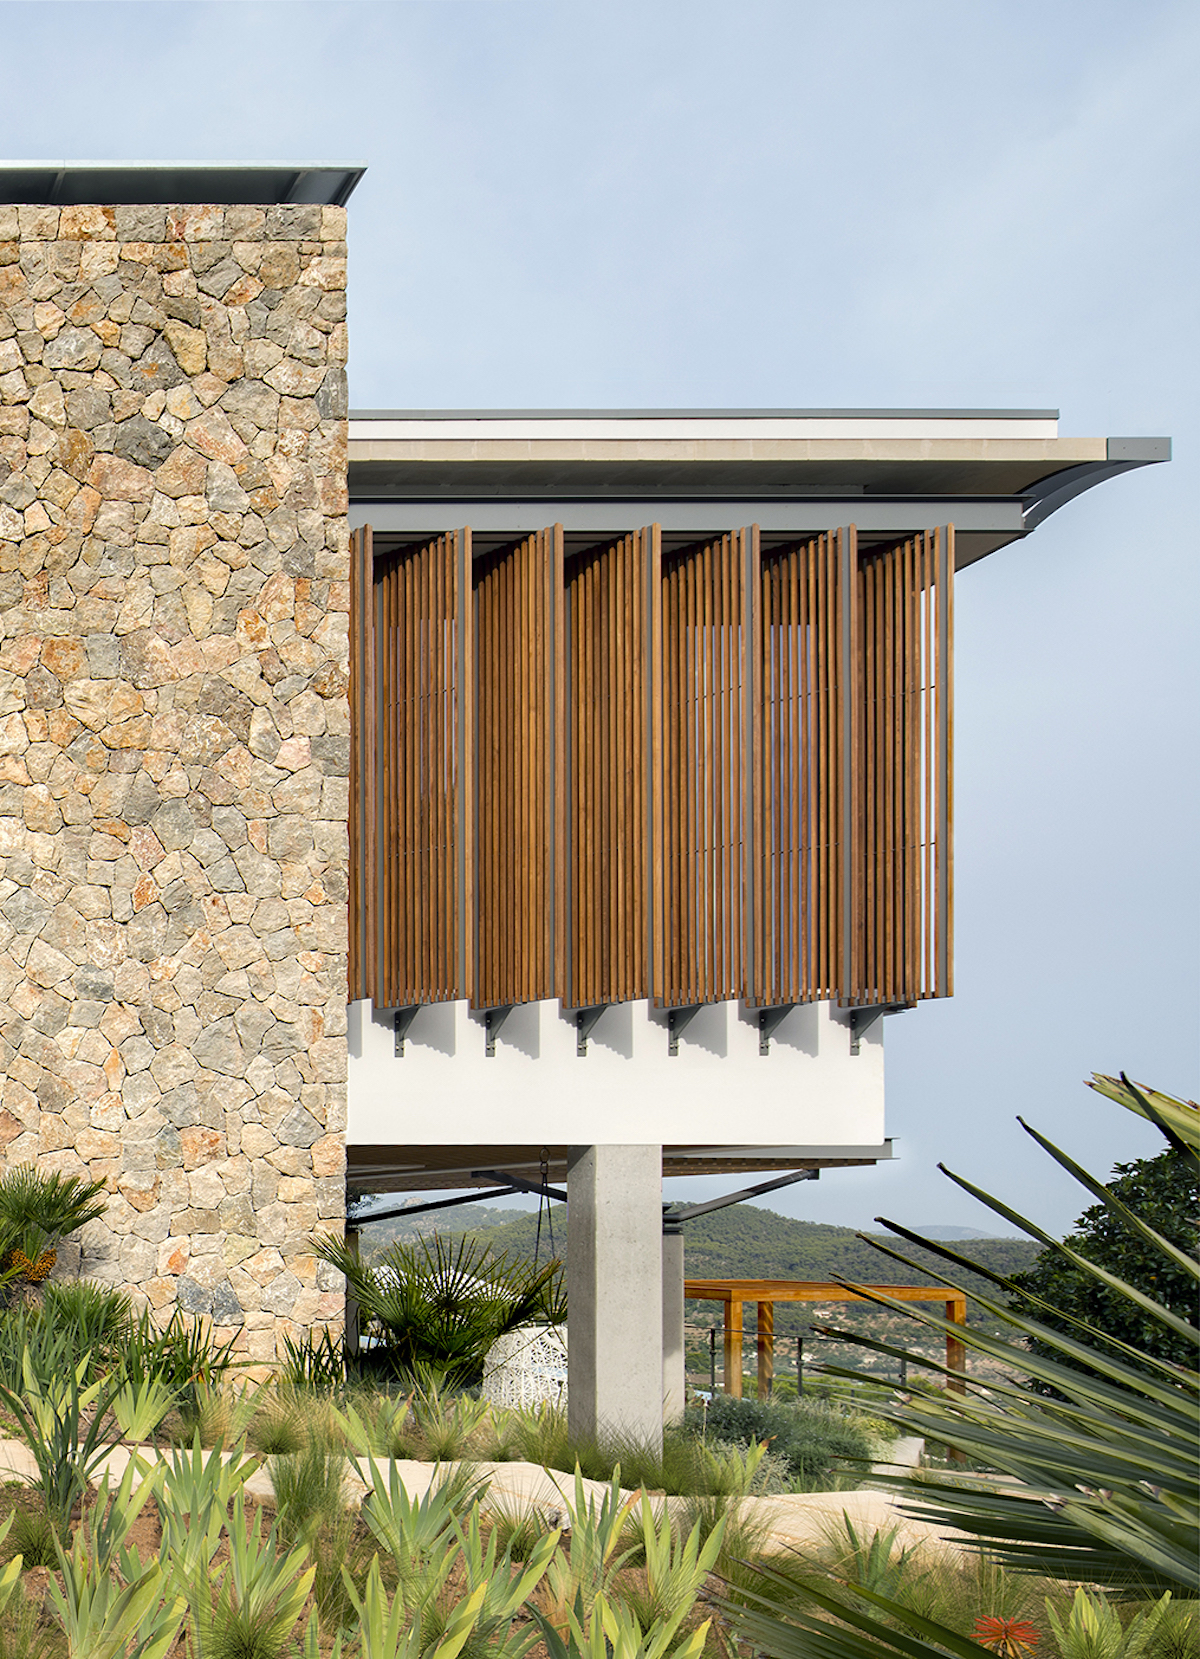 wooden shutters and pergolas help to regulate the sunlight and to ensure the right amount of privacy for the indoor areas